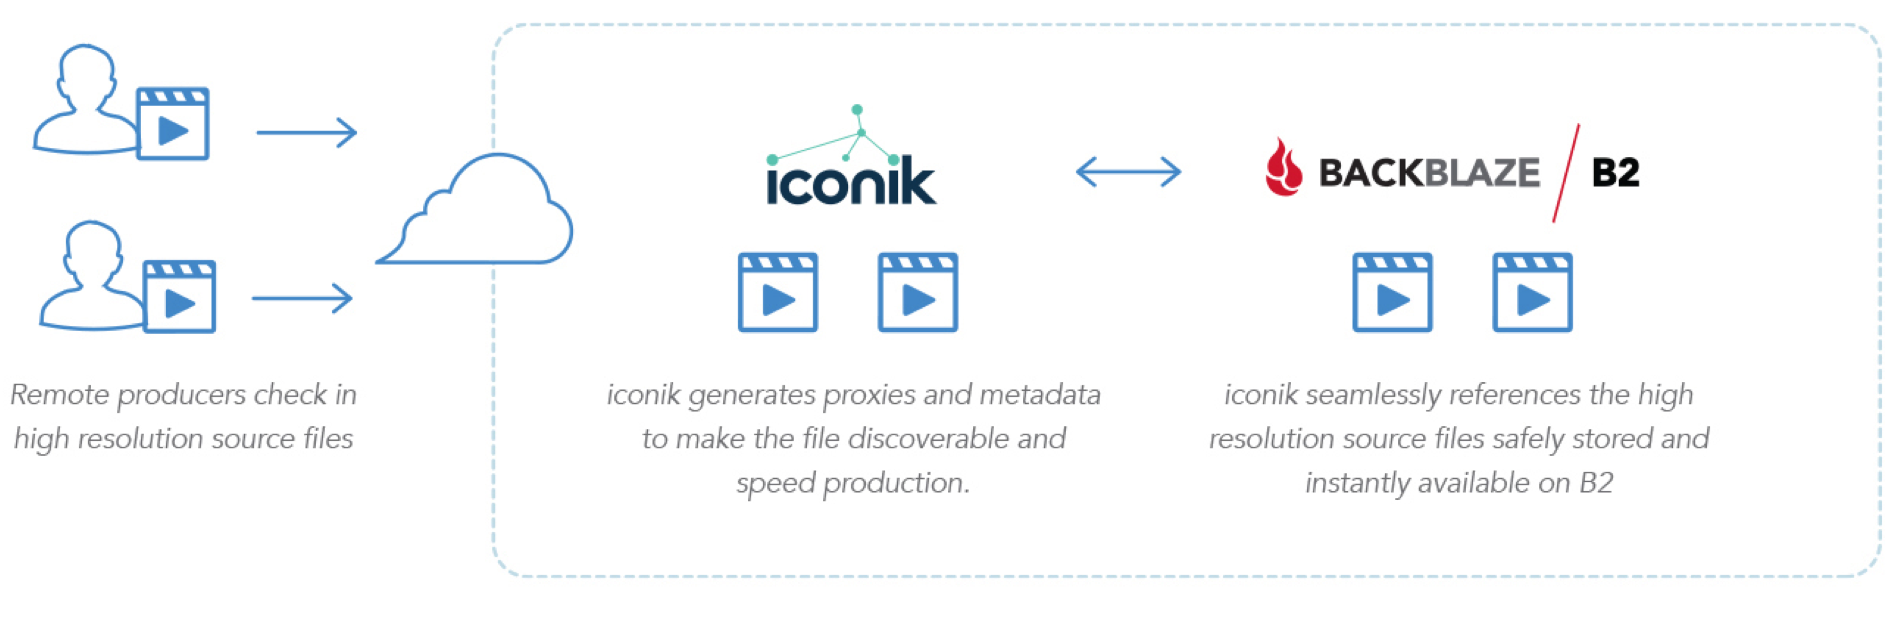 iconik workflow integration with Backblaze B2